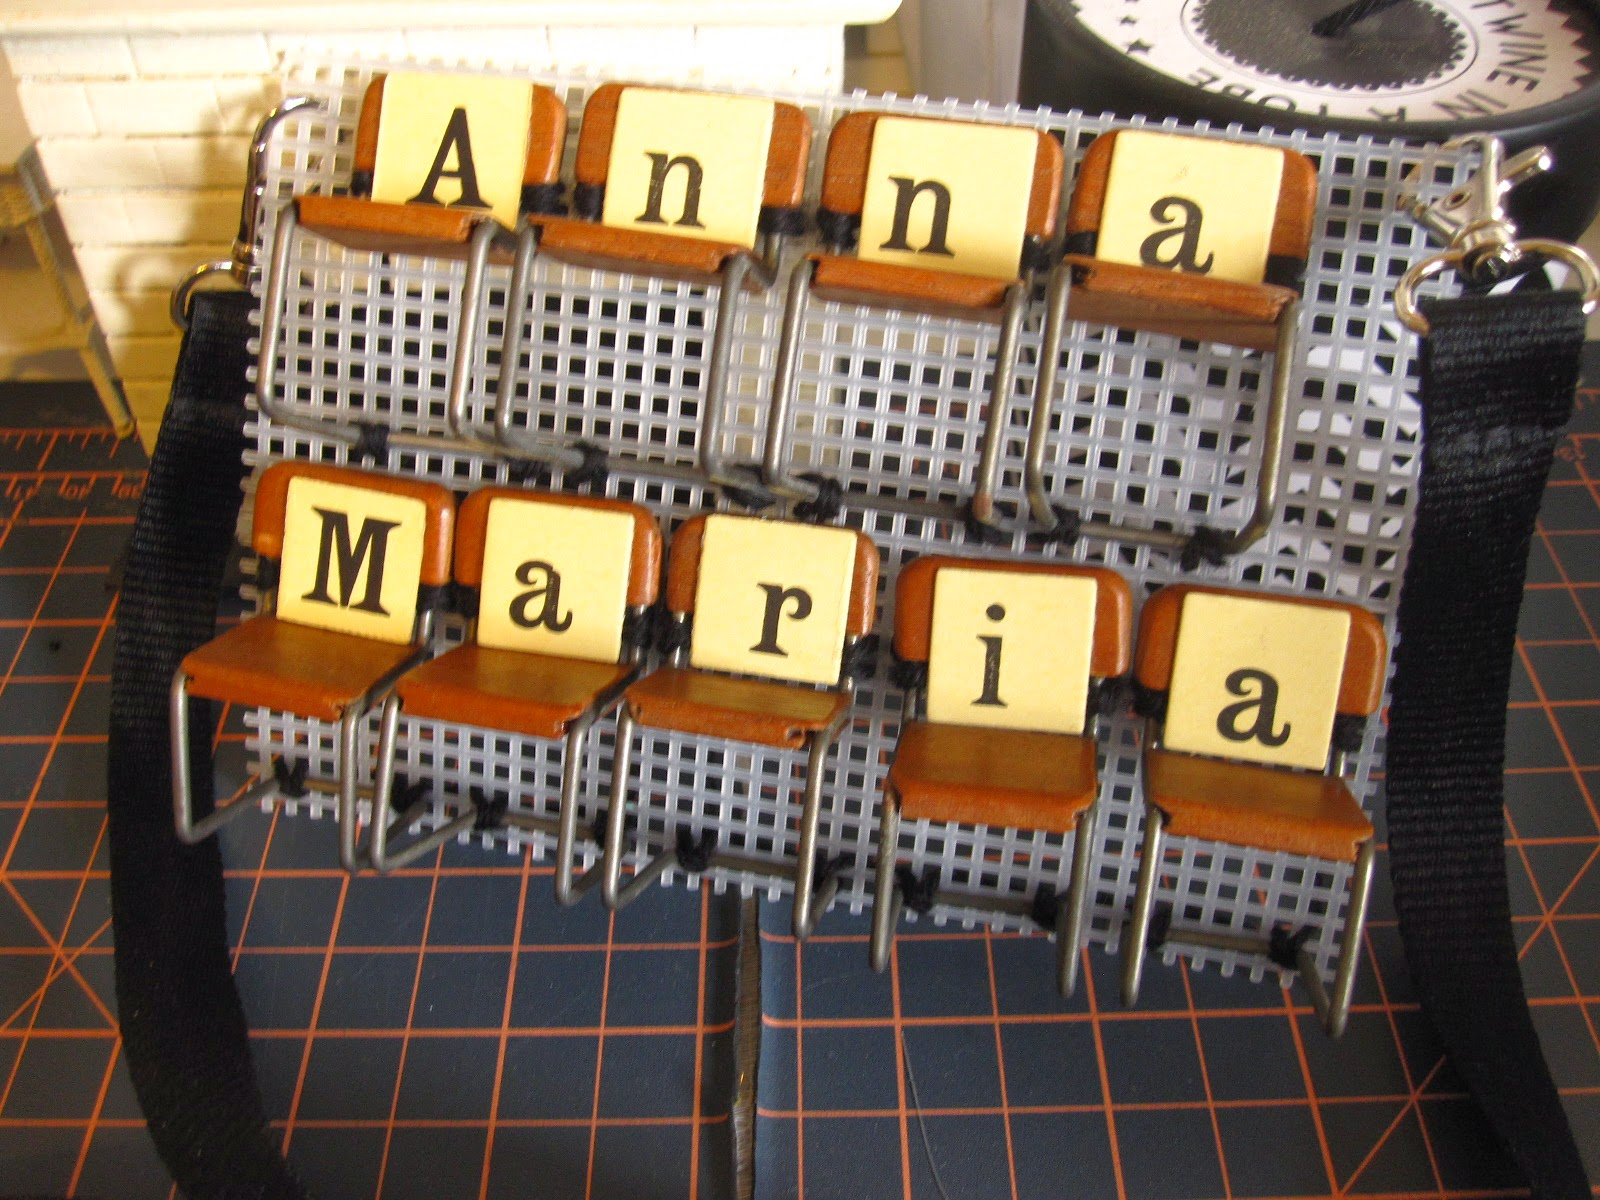 Name tag made from vintage miniature chairs sewn onto plastic canvas with vintage game letters attached to the seats,